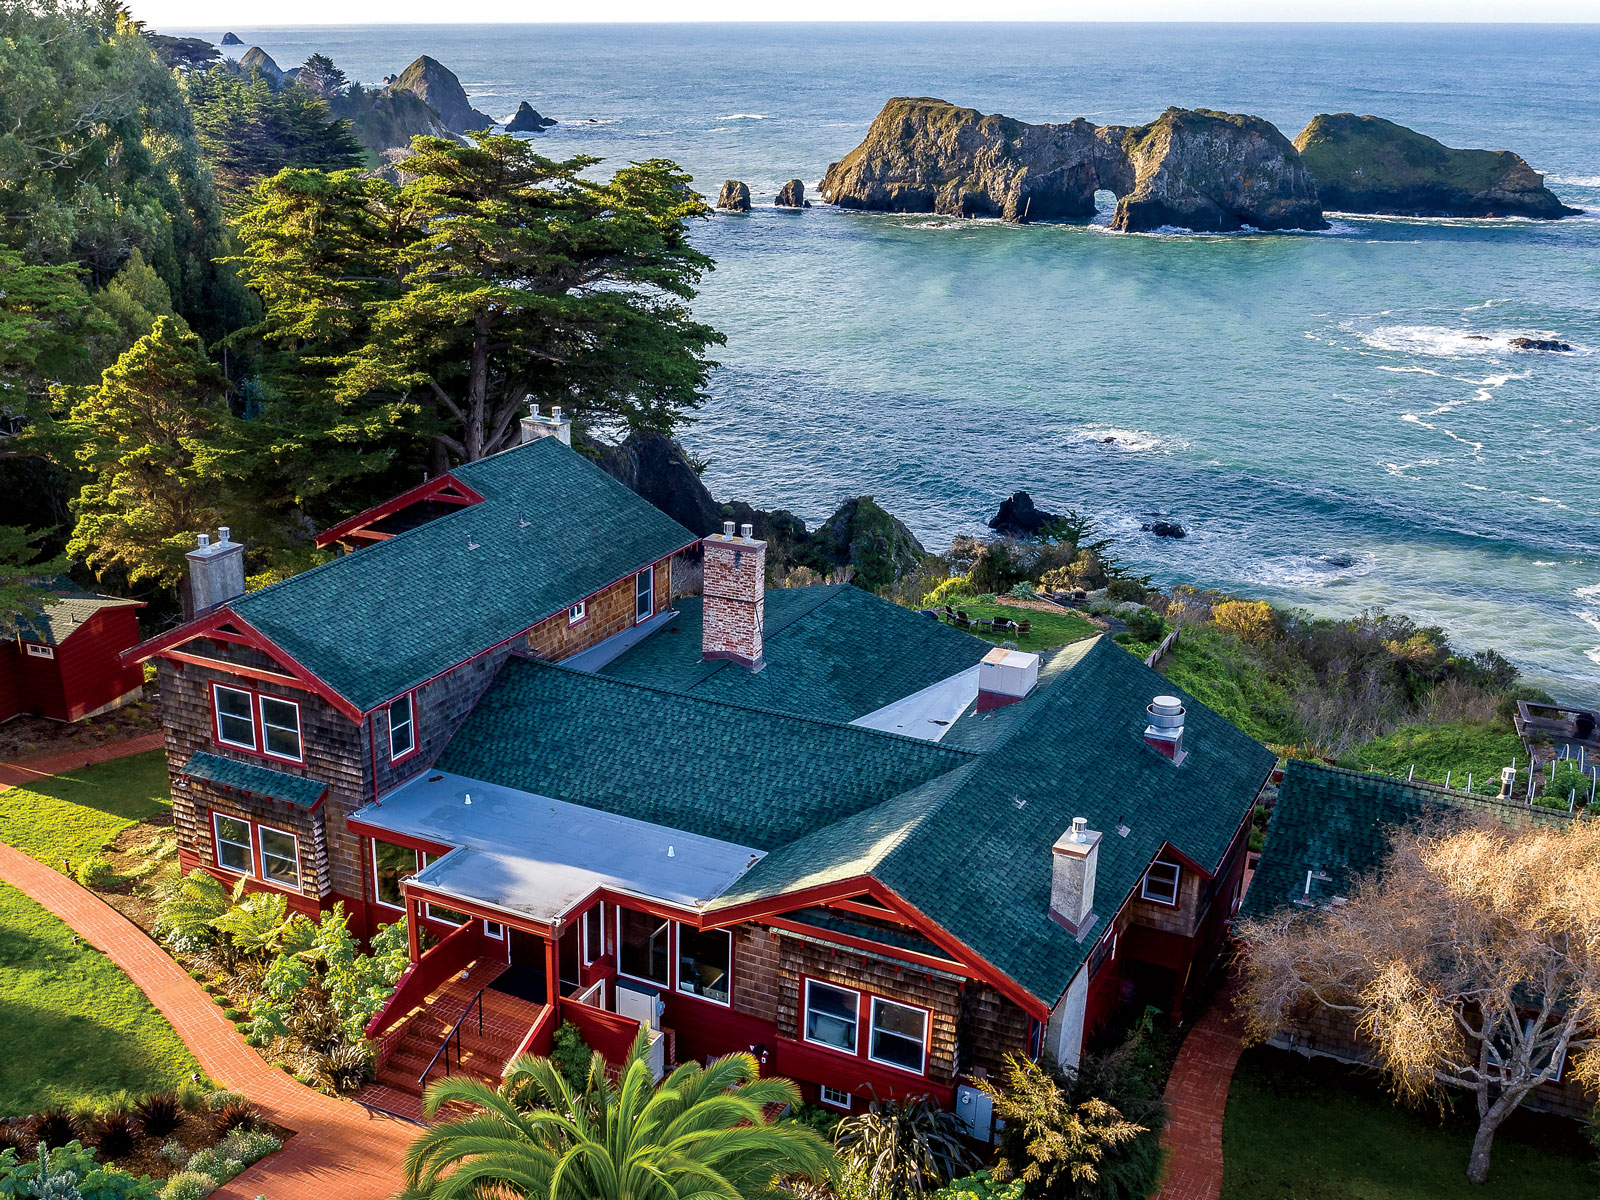 How Chef Matthew Kammerer Makes Magic with Seaweed at Elk's Harbor House Inn